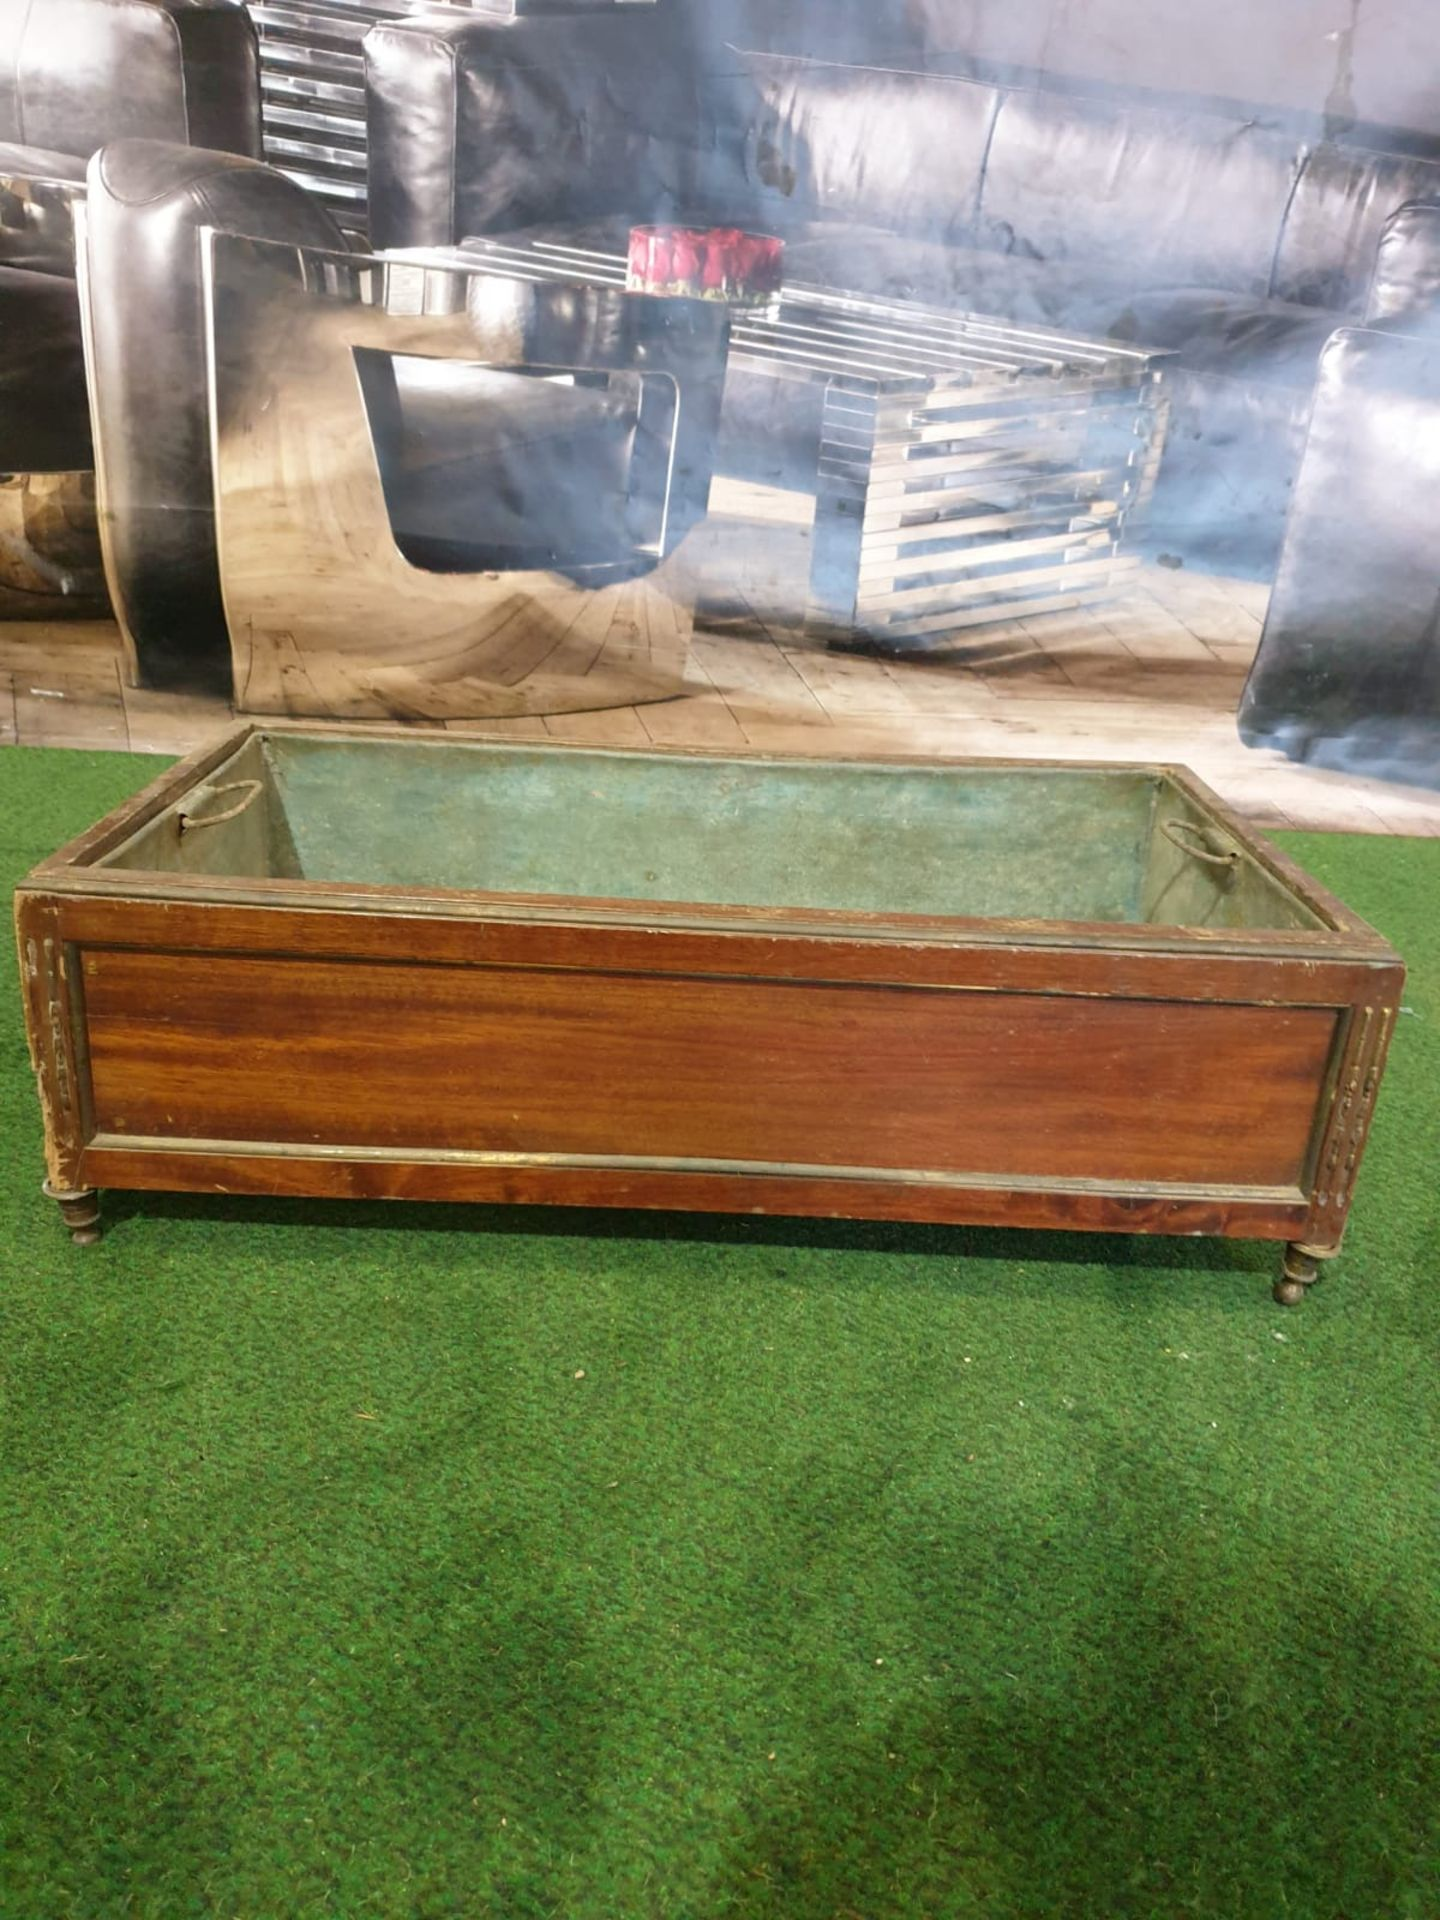 A Regency style Inlaid Mahogany Planter trough with original metal insert on shaped bun feet 65 x 35 - Image 4 of 4